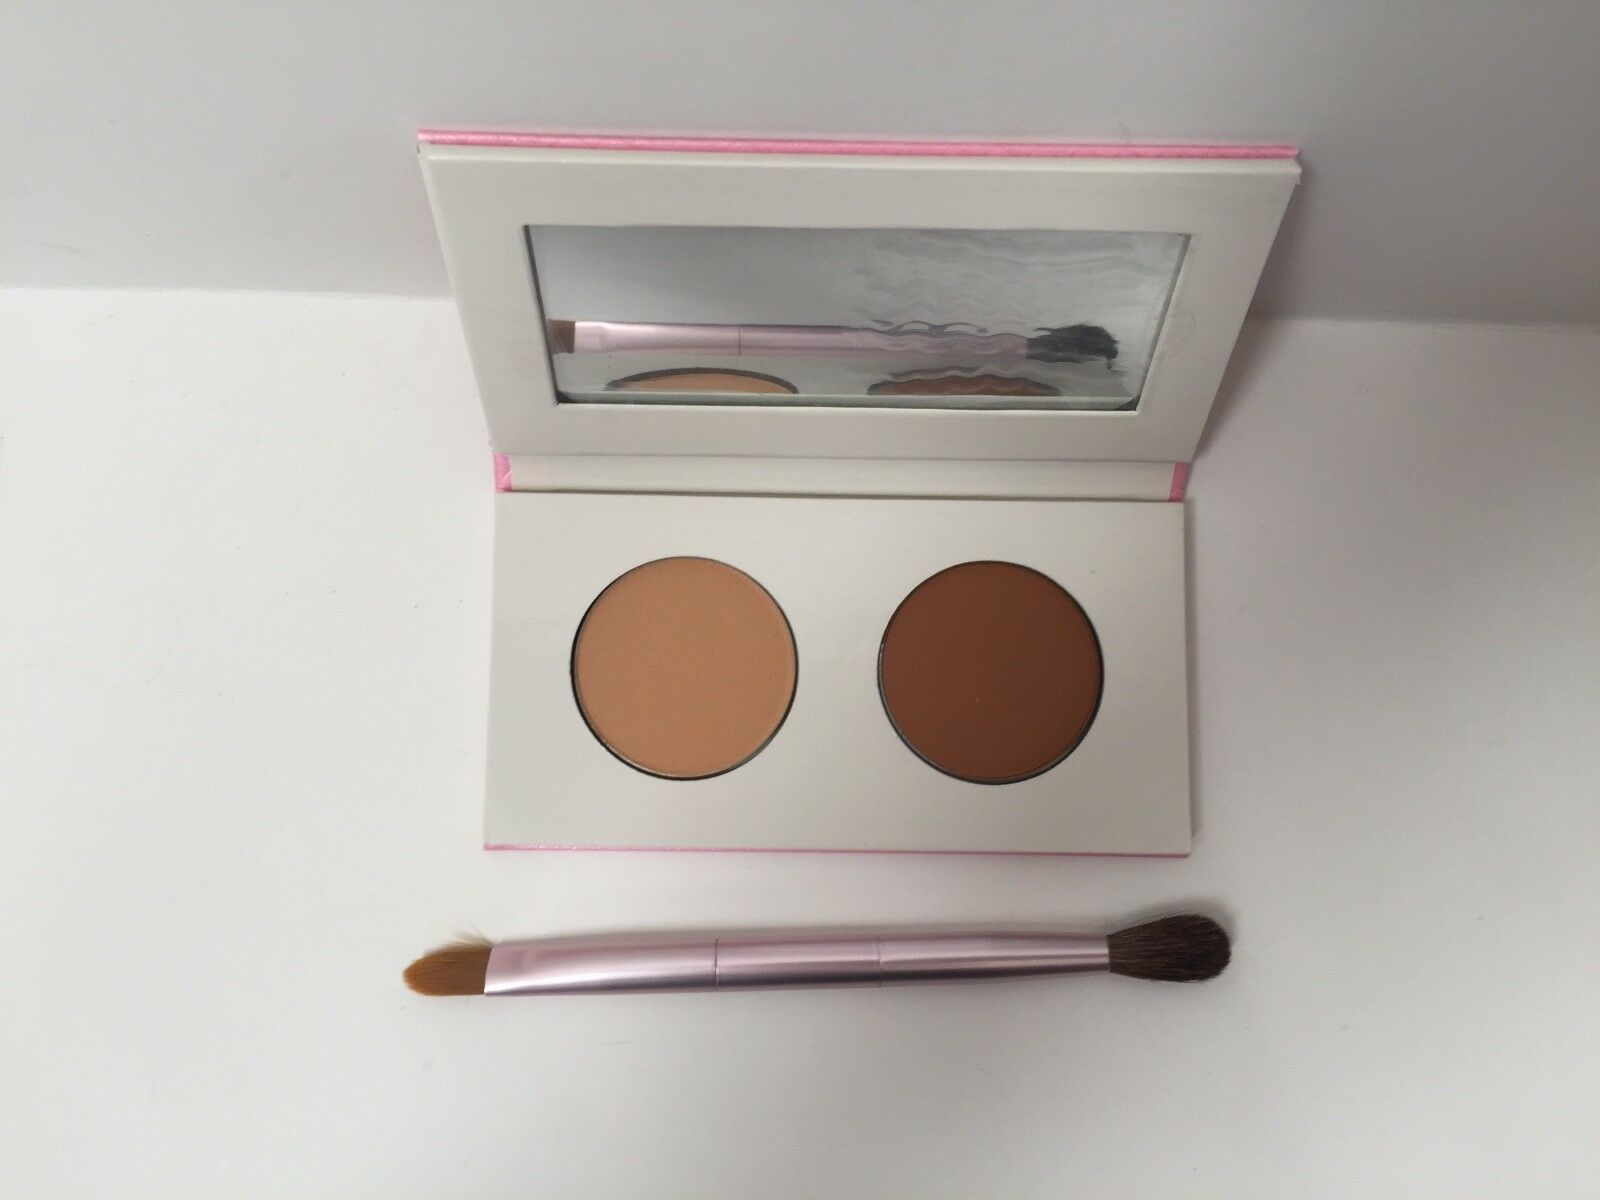 Mally Beauty Cancellation Concealer Mirrored Compact Duo Deep Setting Powder